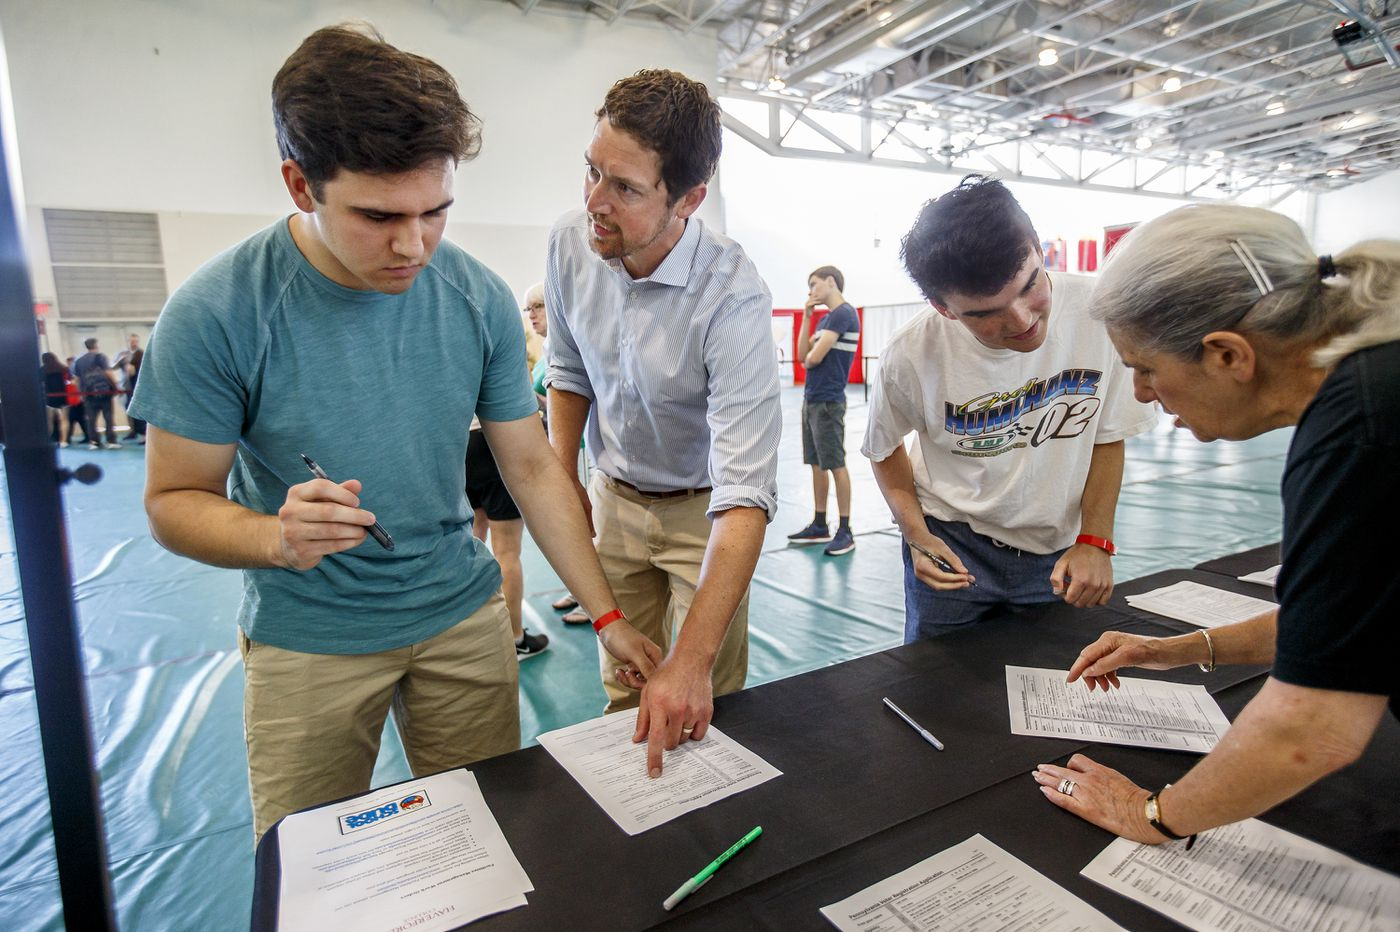 Voting on campus: At Haverford College, they want to, but can't